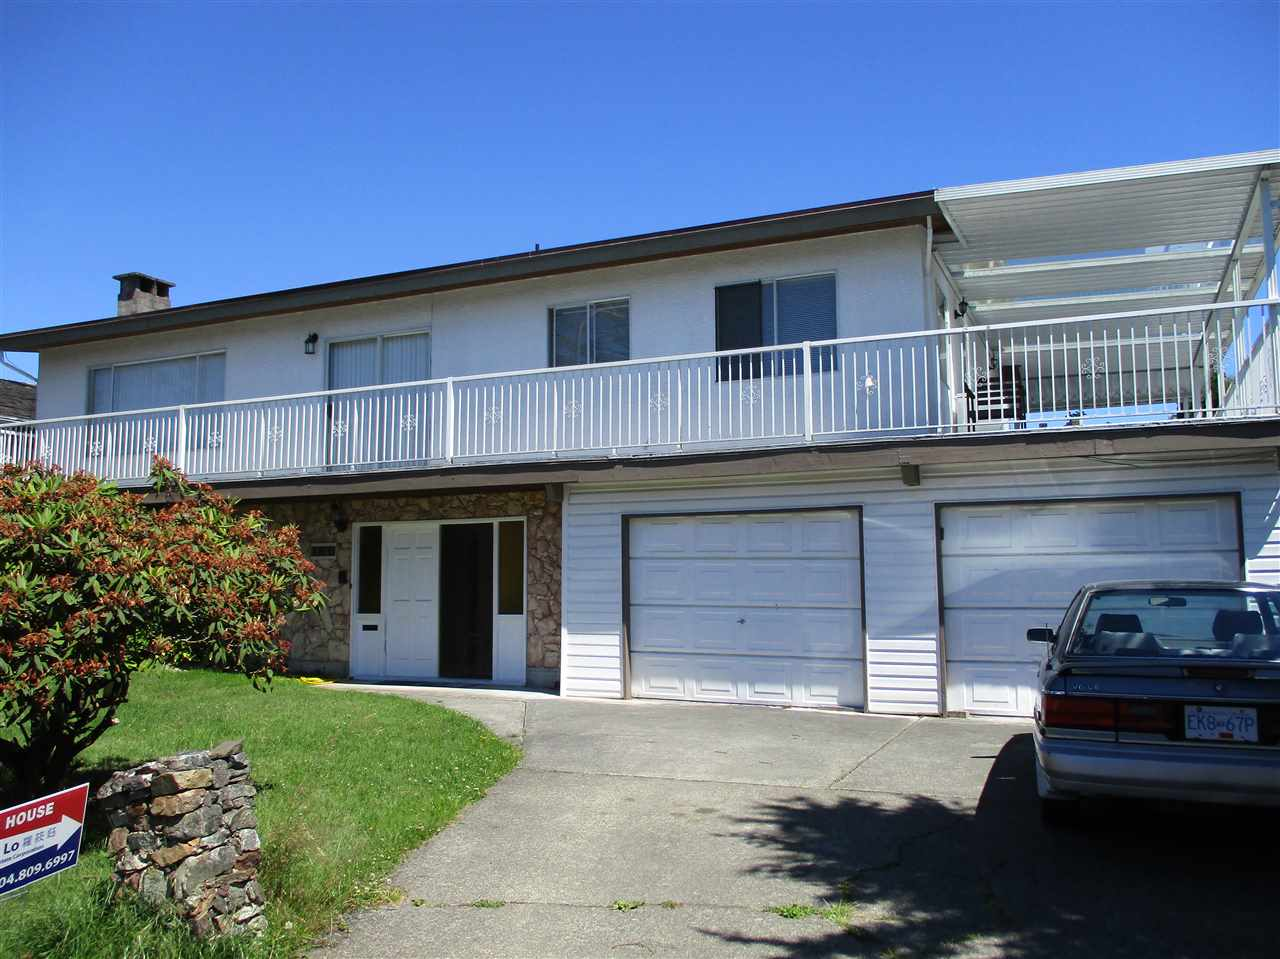 Photo 1: 10360 SPRINGHILL Crescent in Richmond: Steveston North House for sale : MLS(r) # R2178208